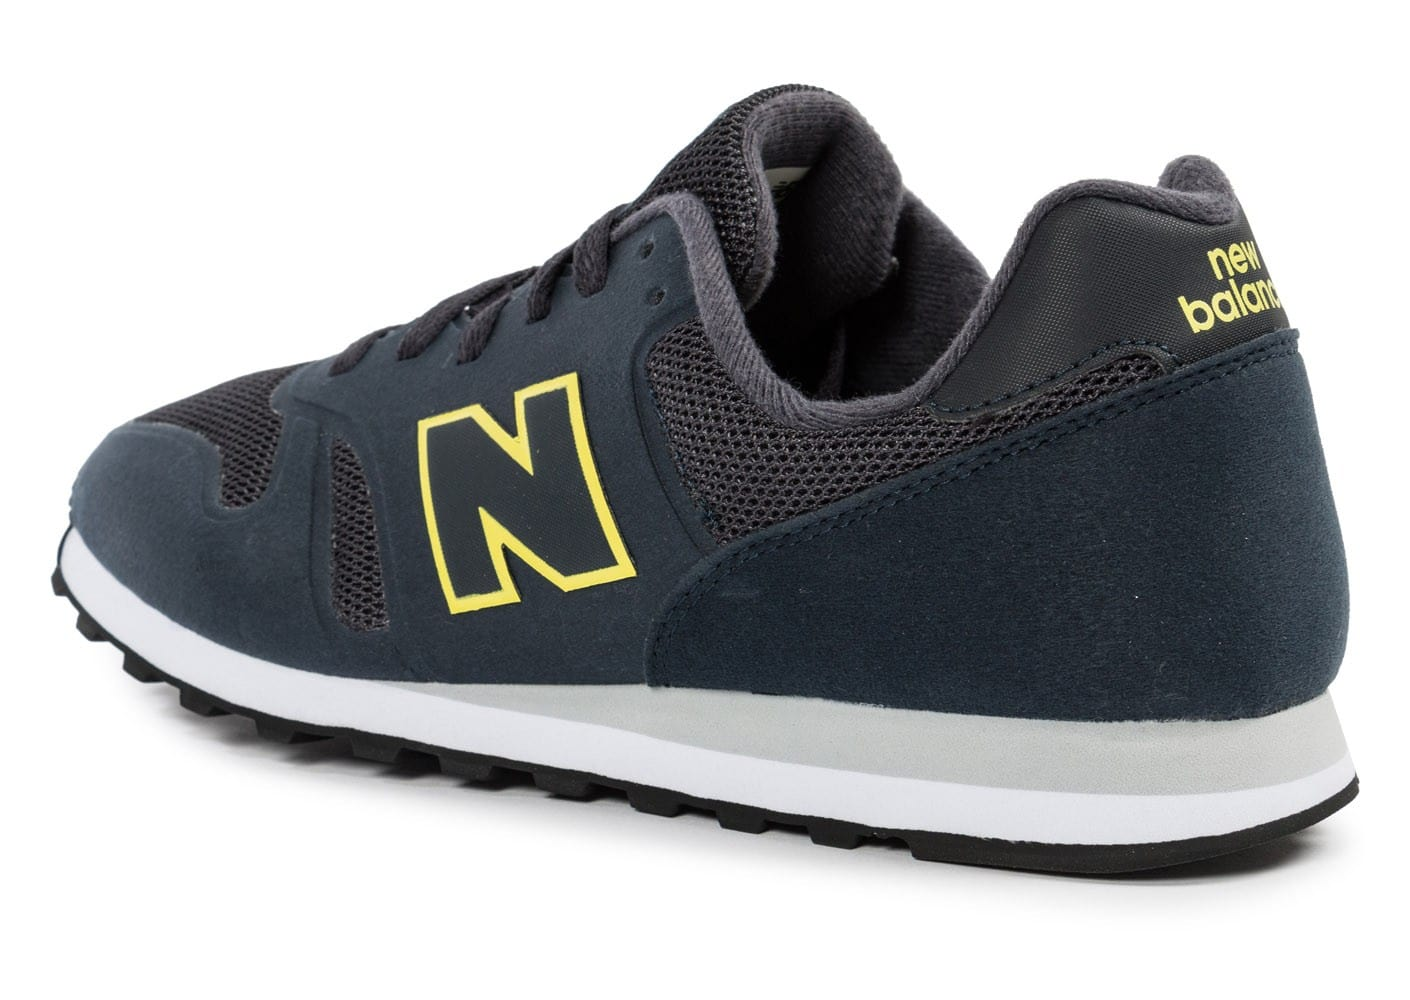 check out 0096e 75086 0538-chaussures-new-balance-md373-ny-bleu-marine-vue-arriere 1.jpg